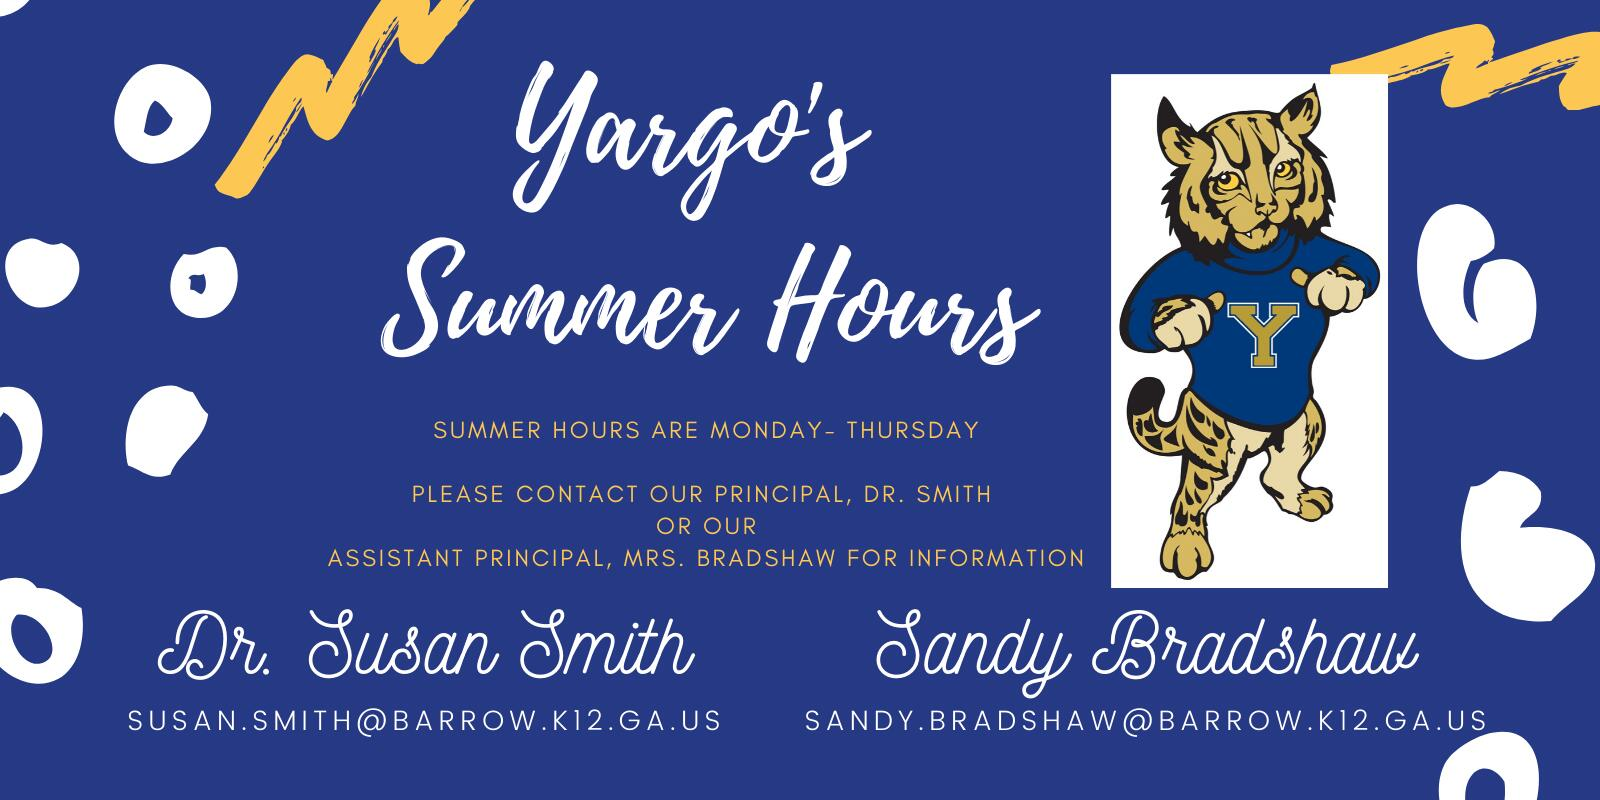 summer hours for Yargo and list the email adresses for the principal and assistant principal